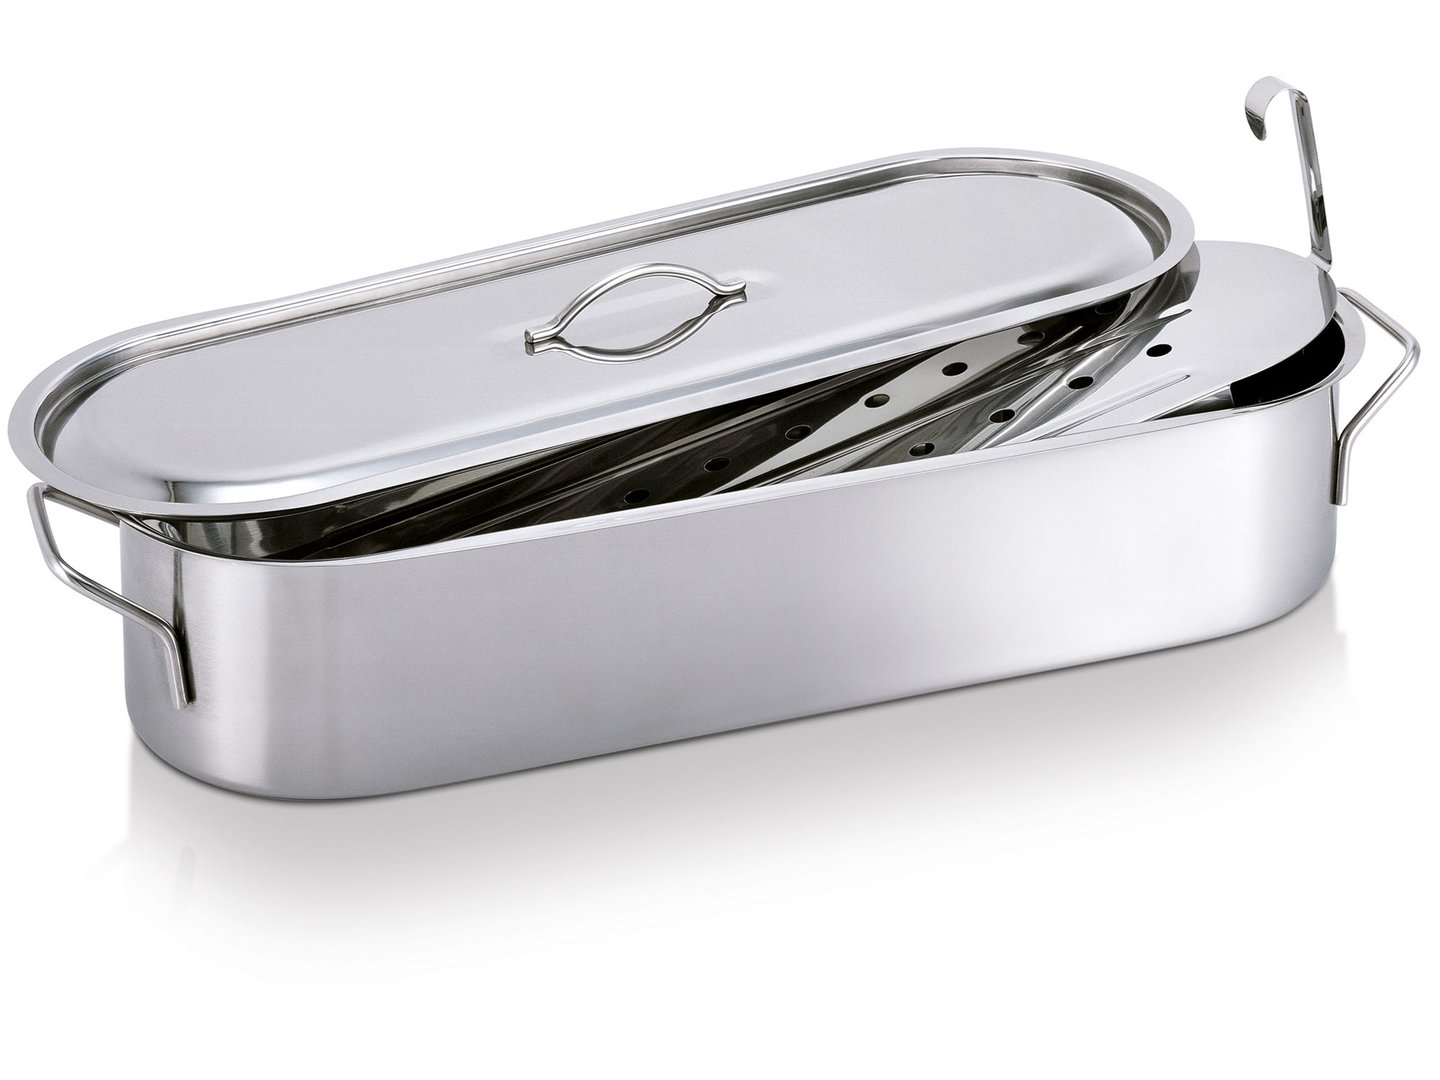 BEKA fish kettle stainless steel poacher oval 50 cm with insert and lid